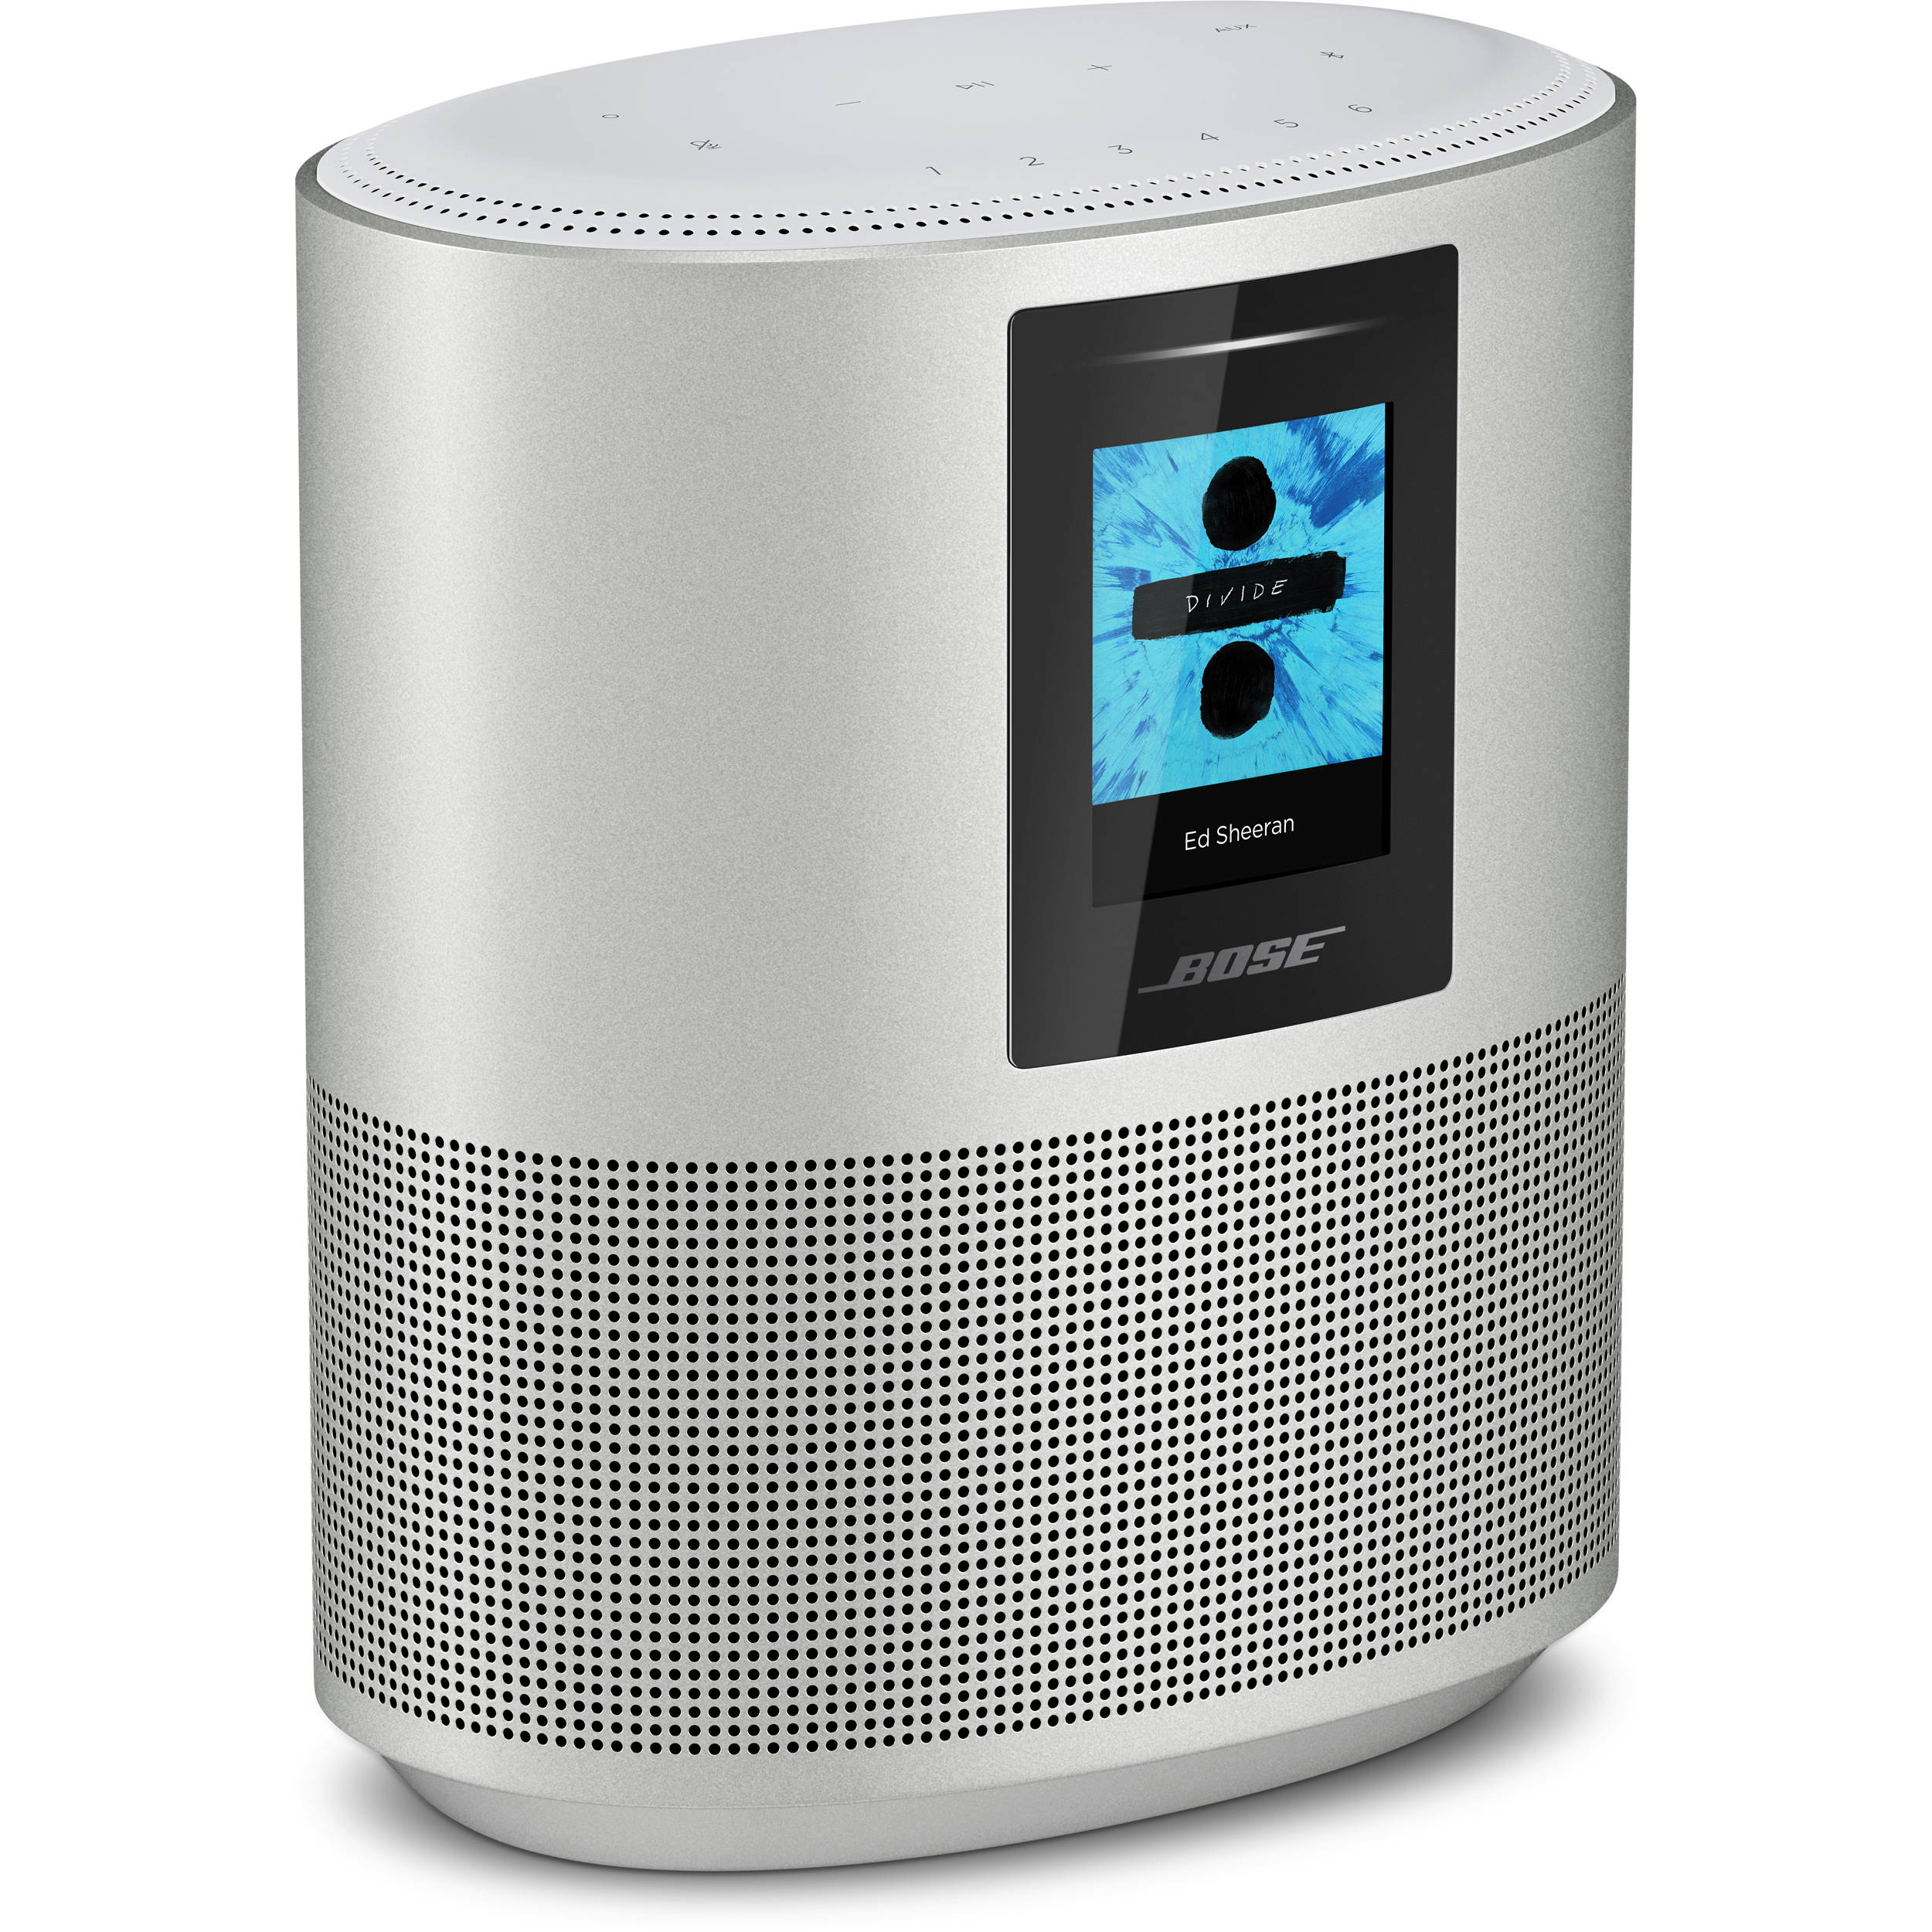 Bose Sound System >> Bose Home Speaker 500 Wireless Speaker System Luxe Silver